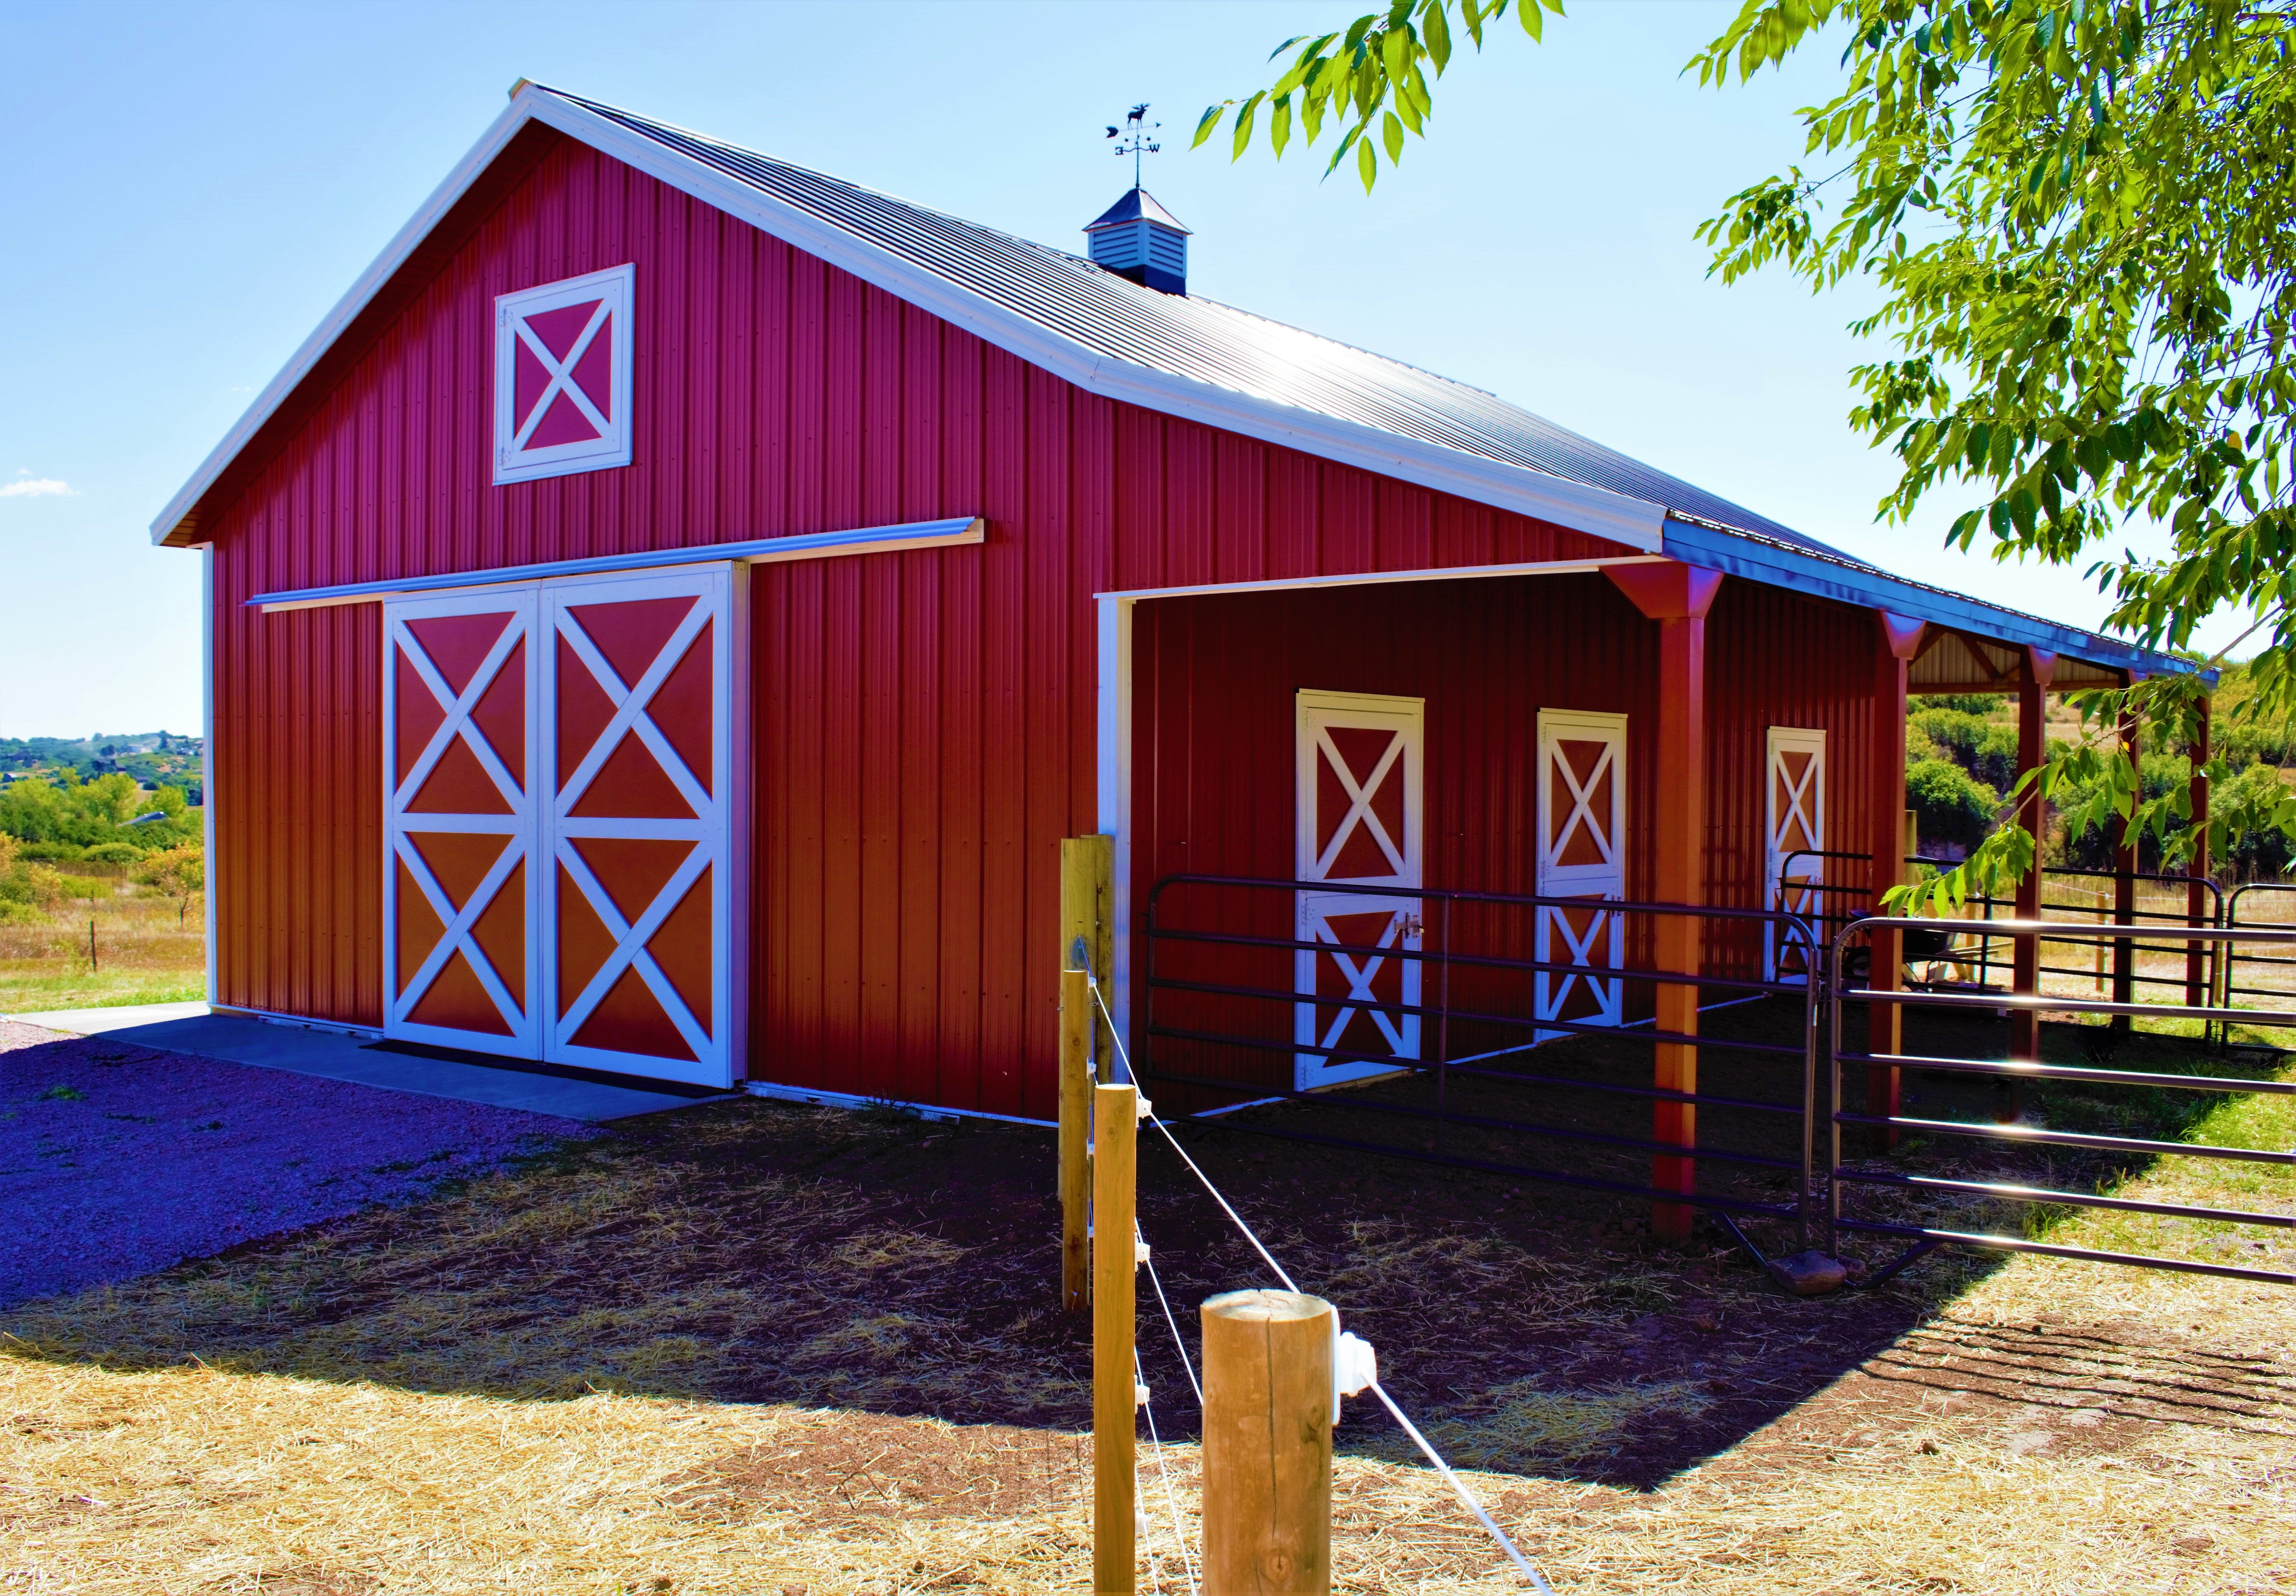 the bucket garage shop do barn a nice colorado journal to friend s has my got east oldest work job with best son and showthread forum so dirt in box direction tractor blade board pole he supervision texas barns